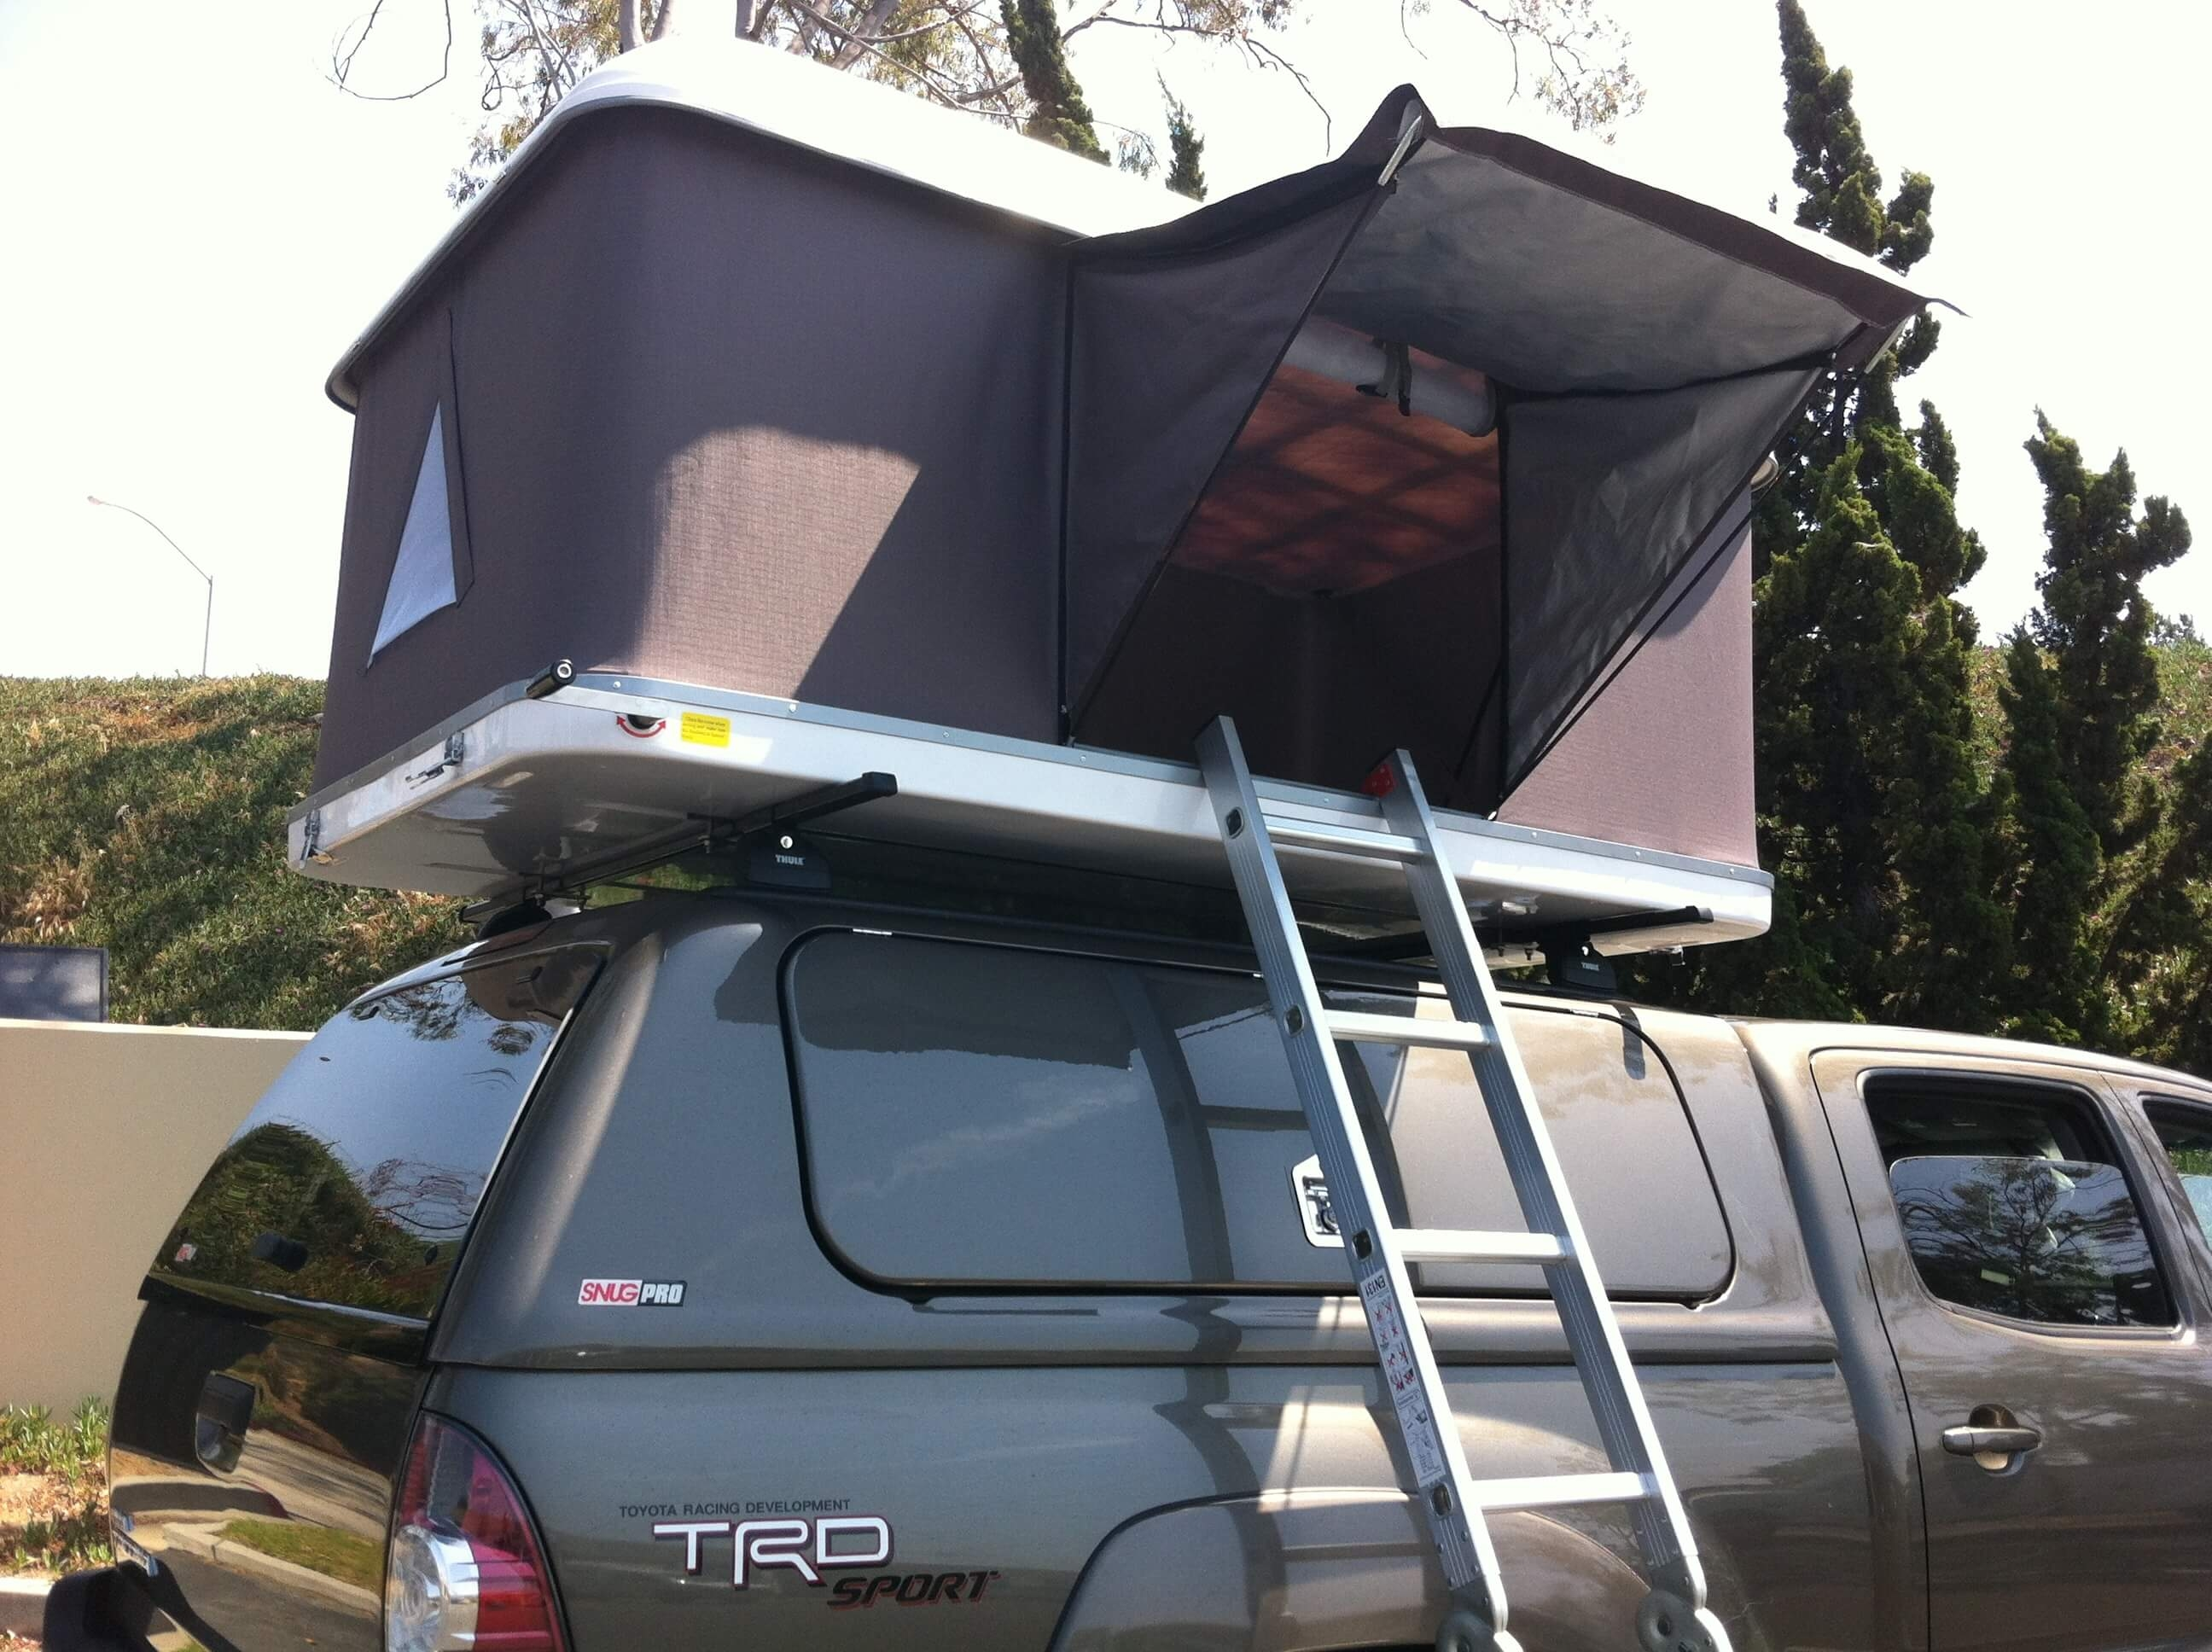 & Hard Shell Tacoma Roof Top Tent Demo